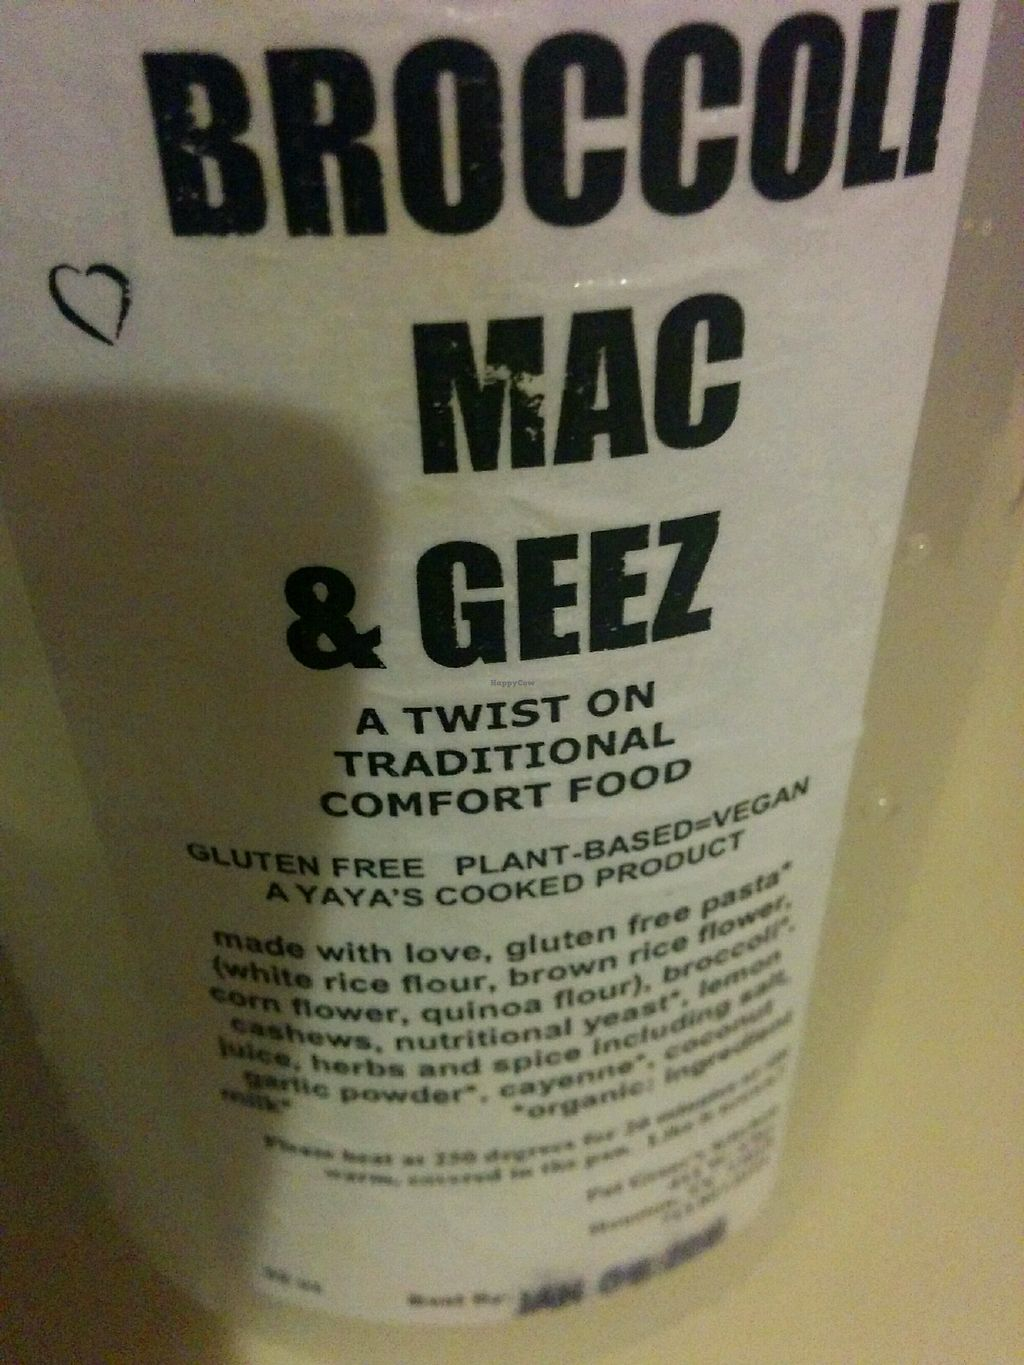 """Photo of Pat Greer's Kitchen  by <a href=""""/members/profile/MizzB"""">MizzB</a> <br/>Broccoli Mac and Geez <br/> December 31, 2017  - <a href='/contact/abuse/image/16694/341360'>Report</a>"""